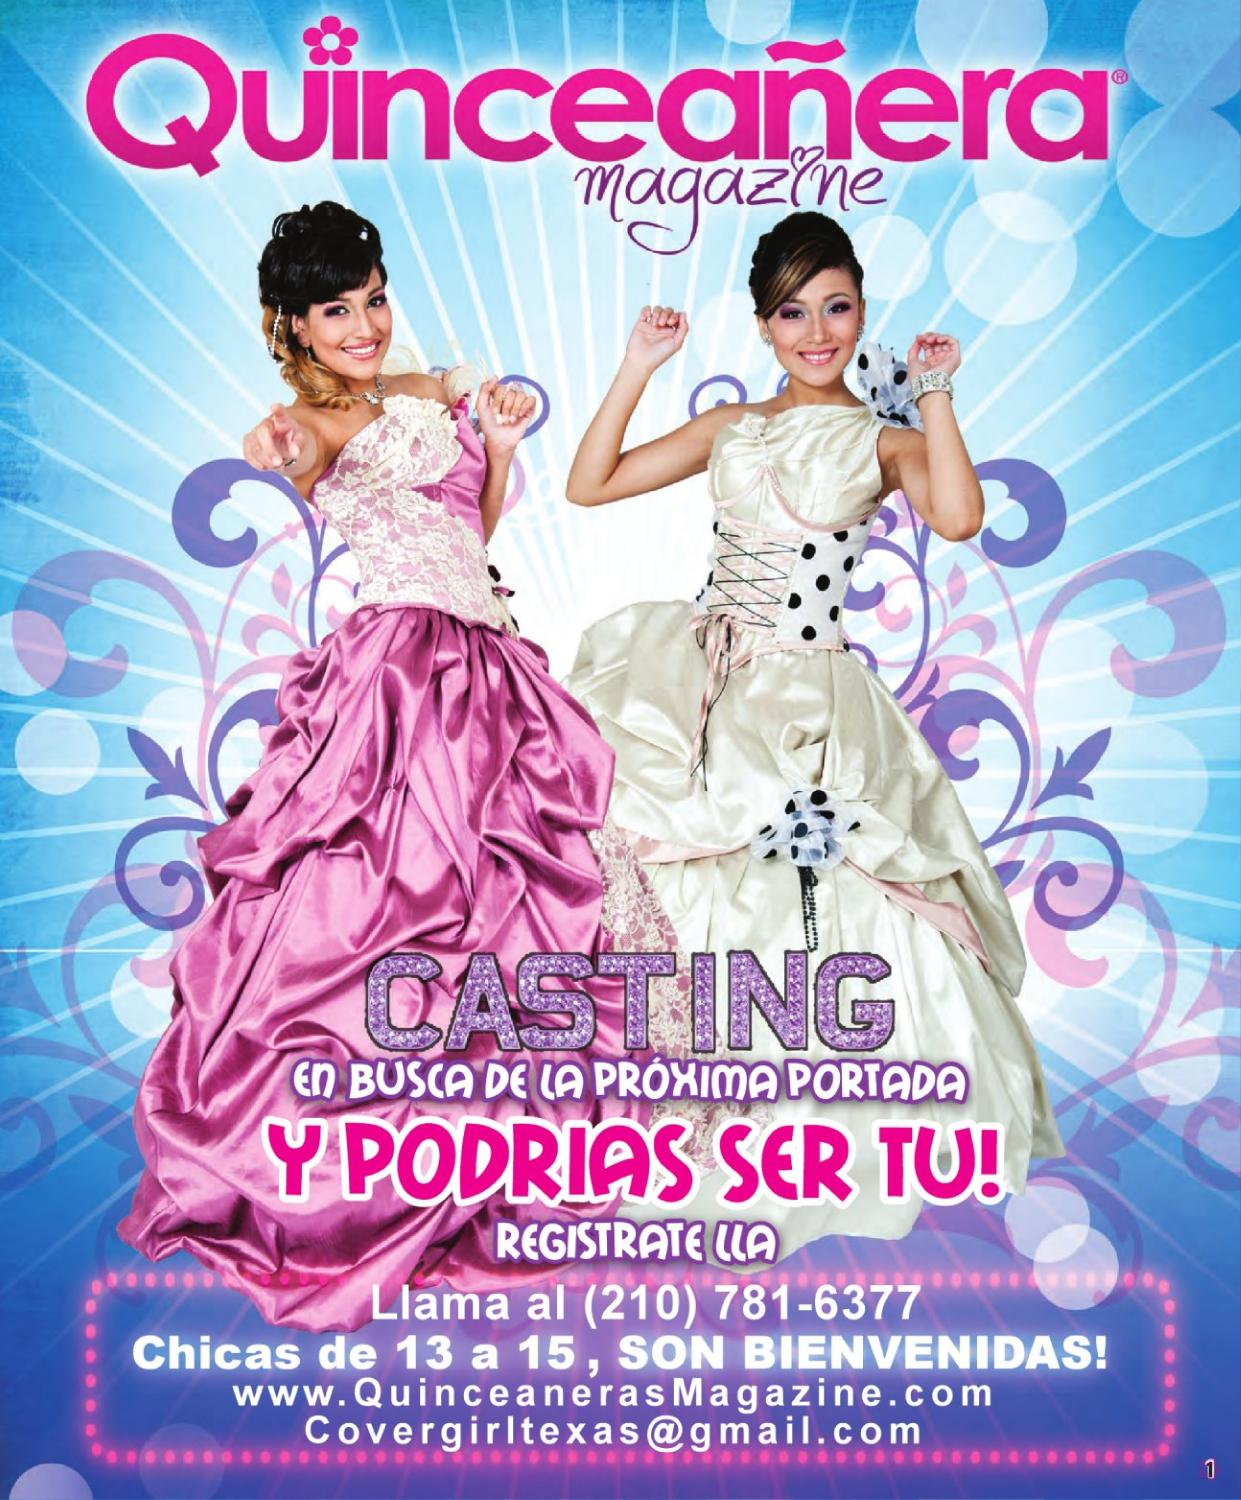 South / Central Quinceanera Magazine 2011 by Texas Quinceaneras ...